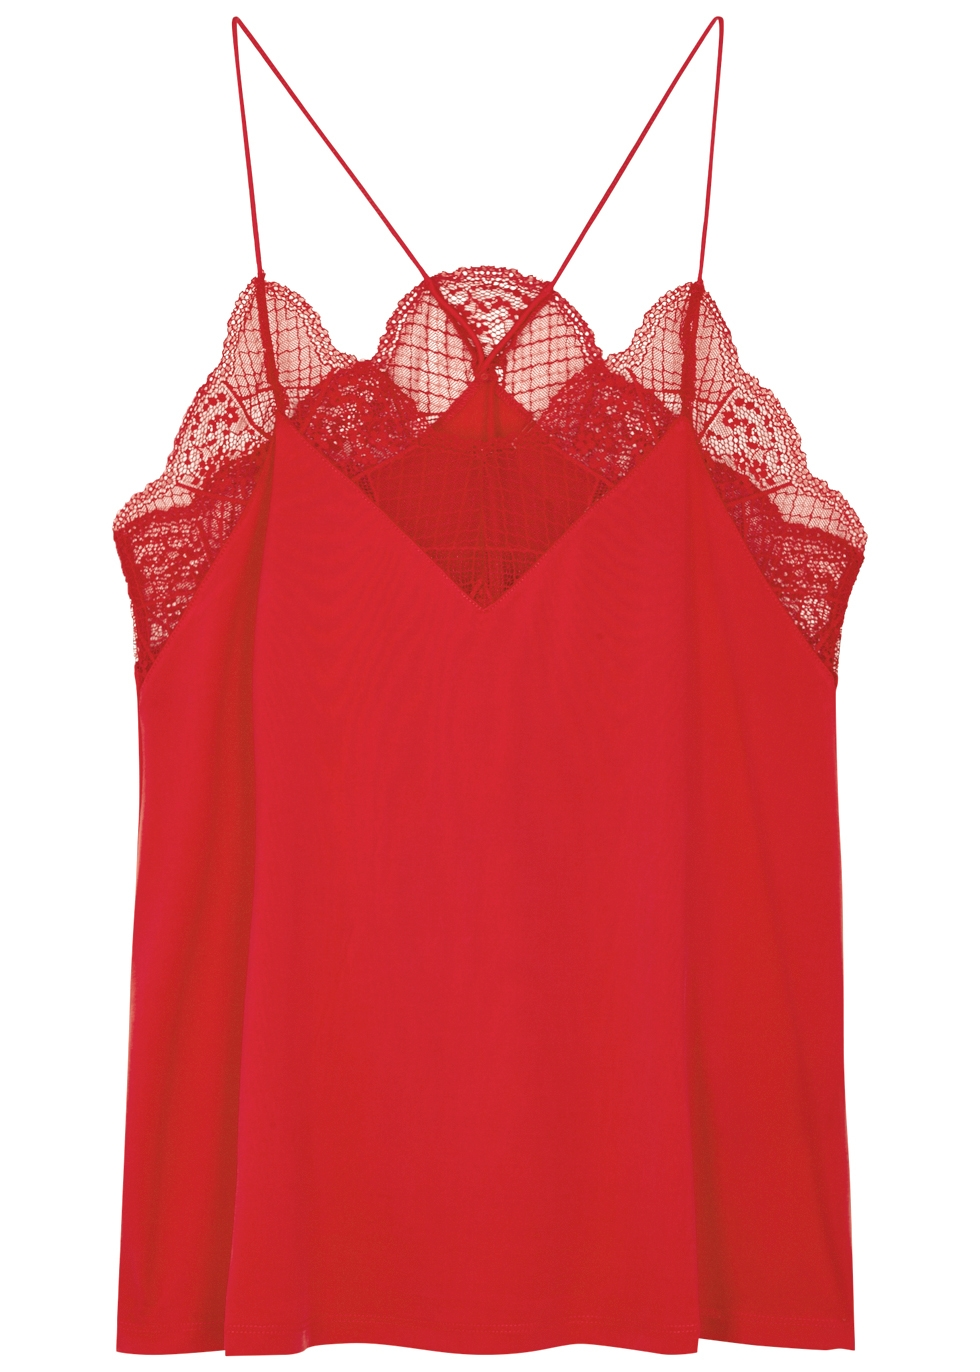 SAMS0E & SAMS0E Celina Lace-Trimmed Jersey Top in Red